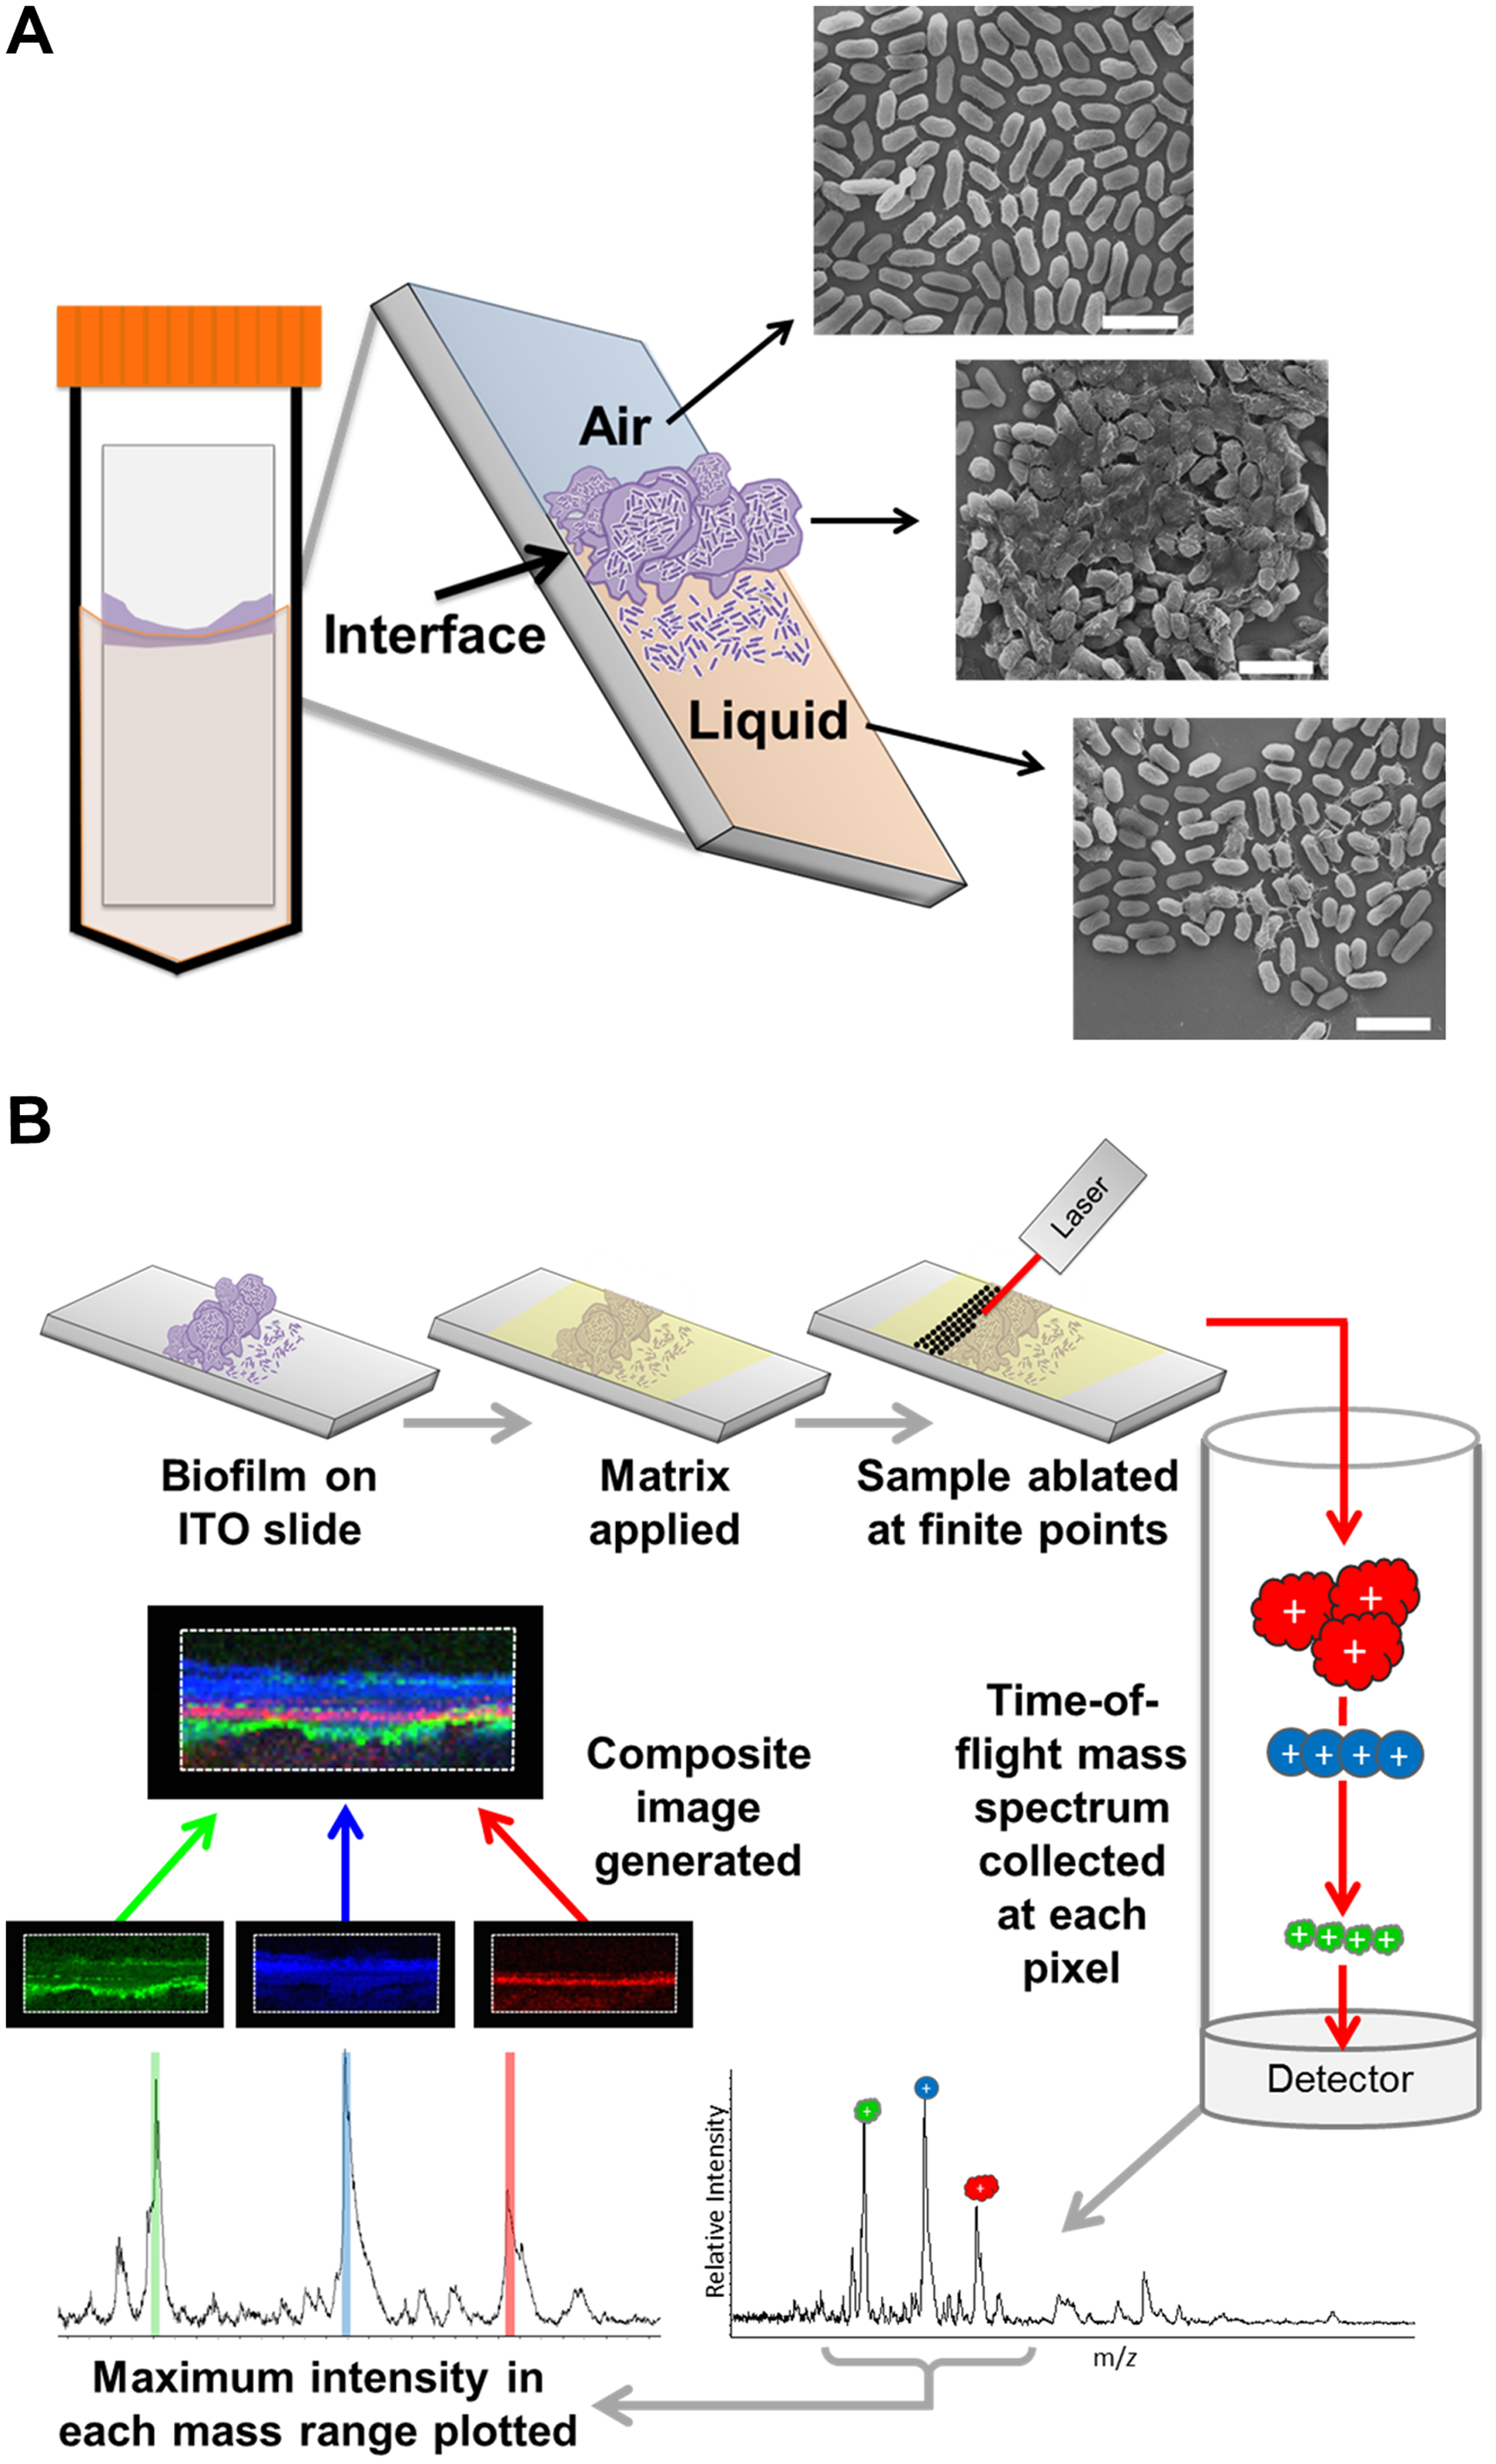 MALDI IMS as a tool to dissect the spatial proteome of bacterial biofilms.